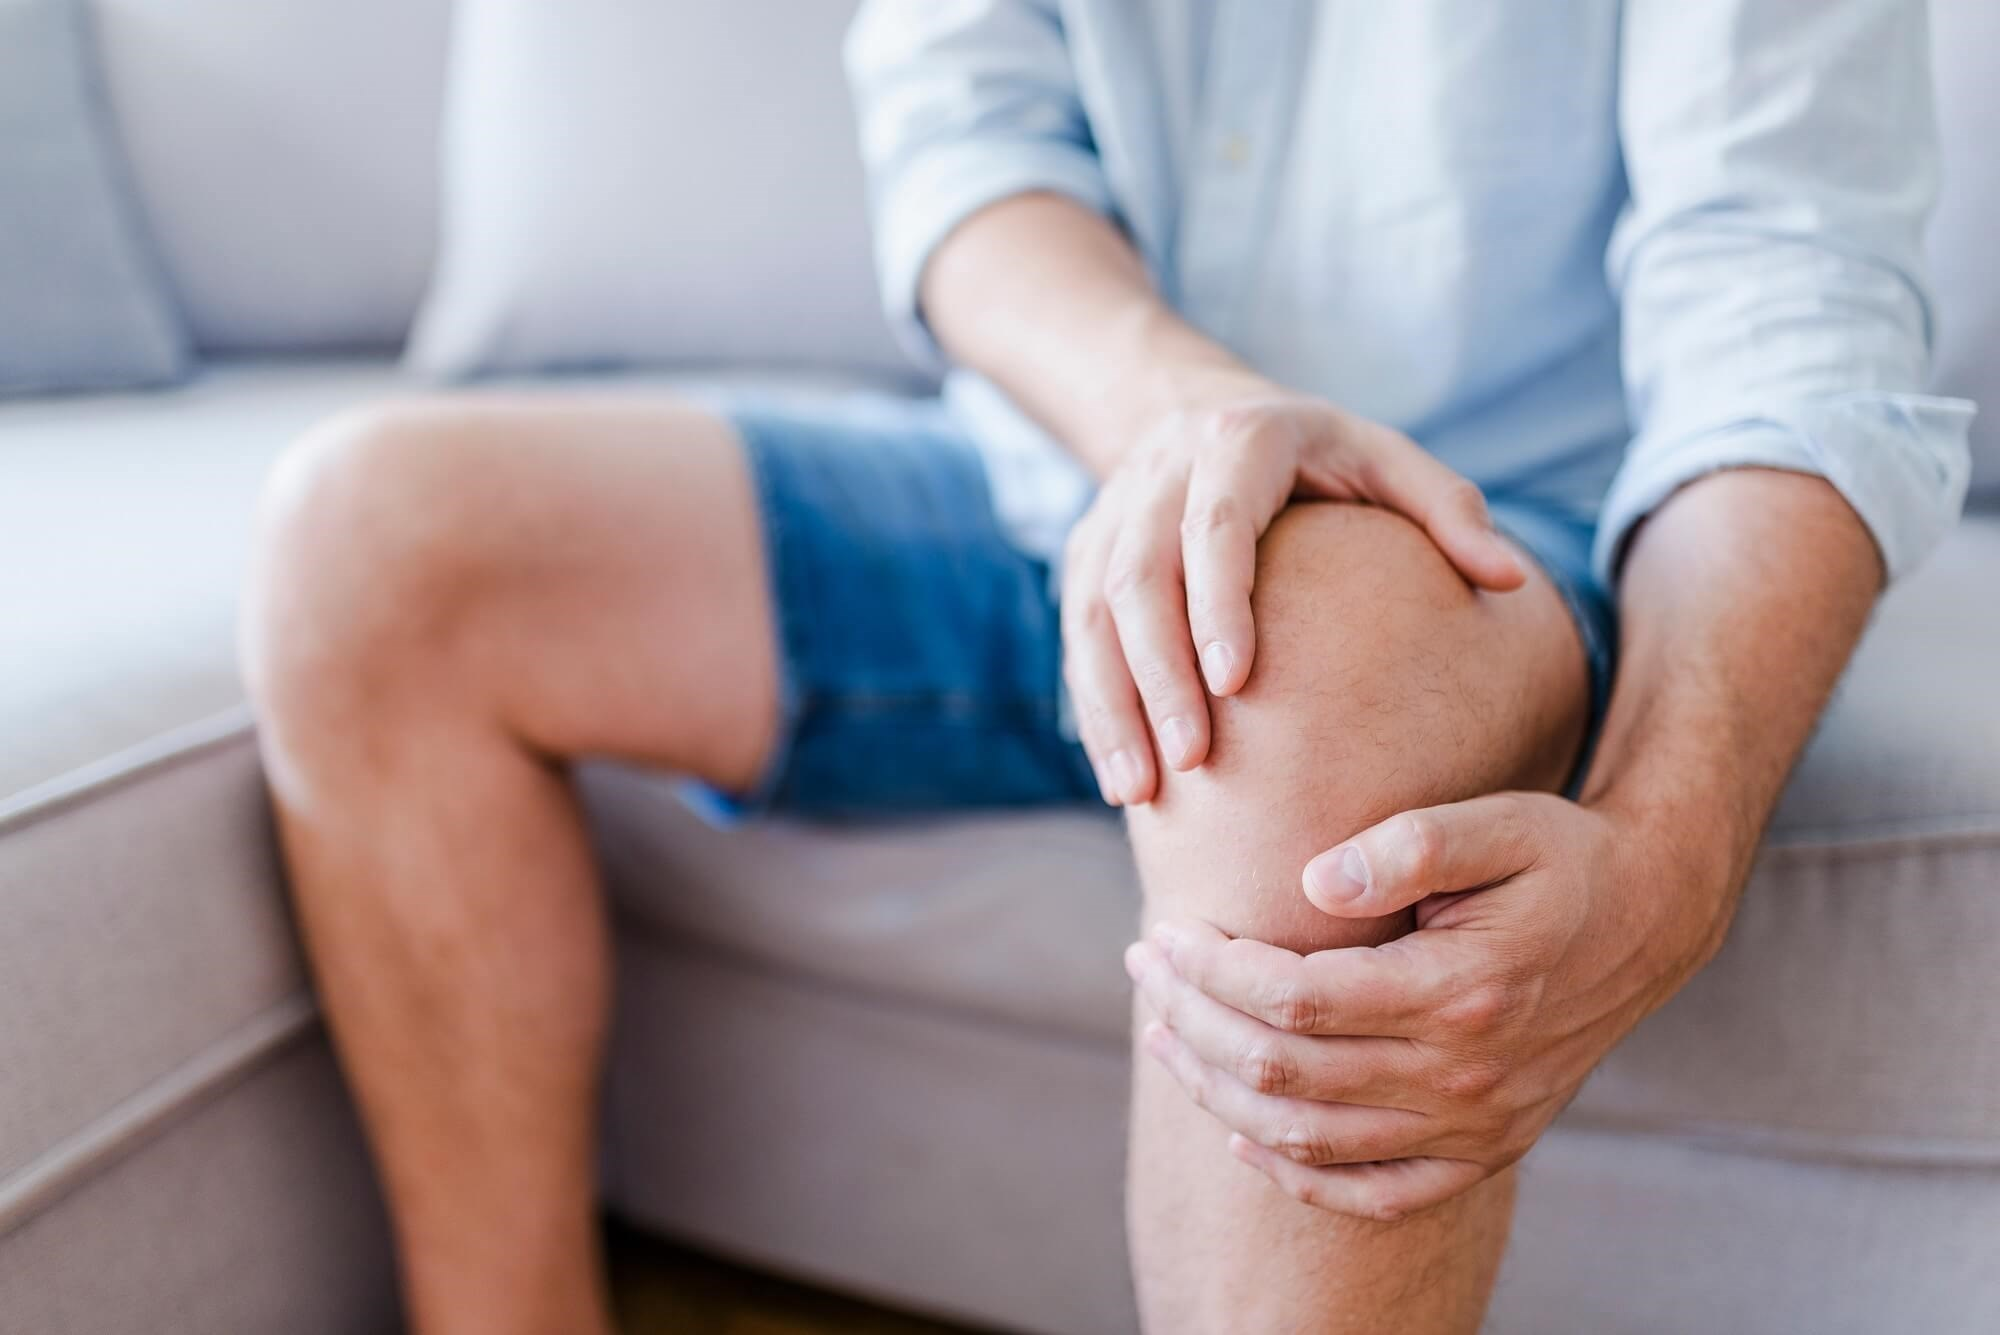 No Benefit Found for Low-Dose Radiation Therapy for in Treatment of Knee Osteoarthritis